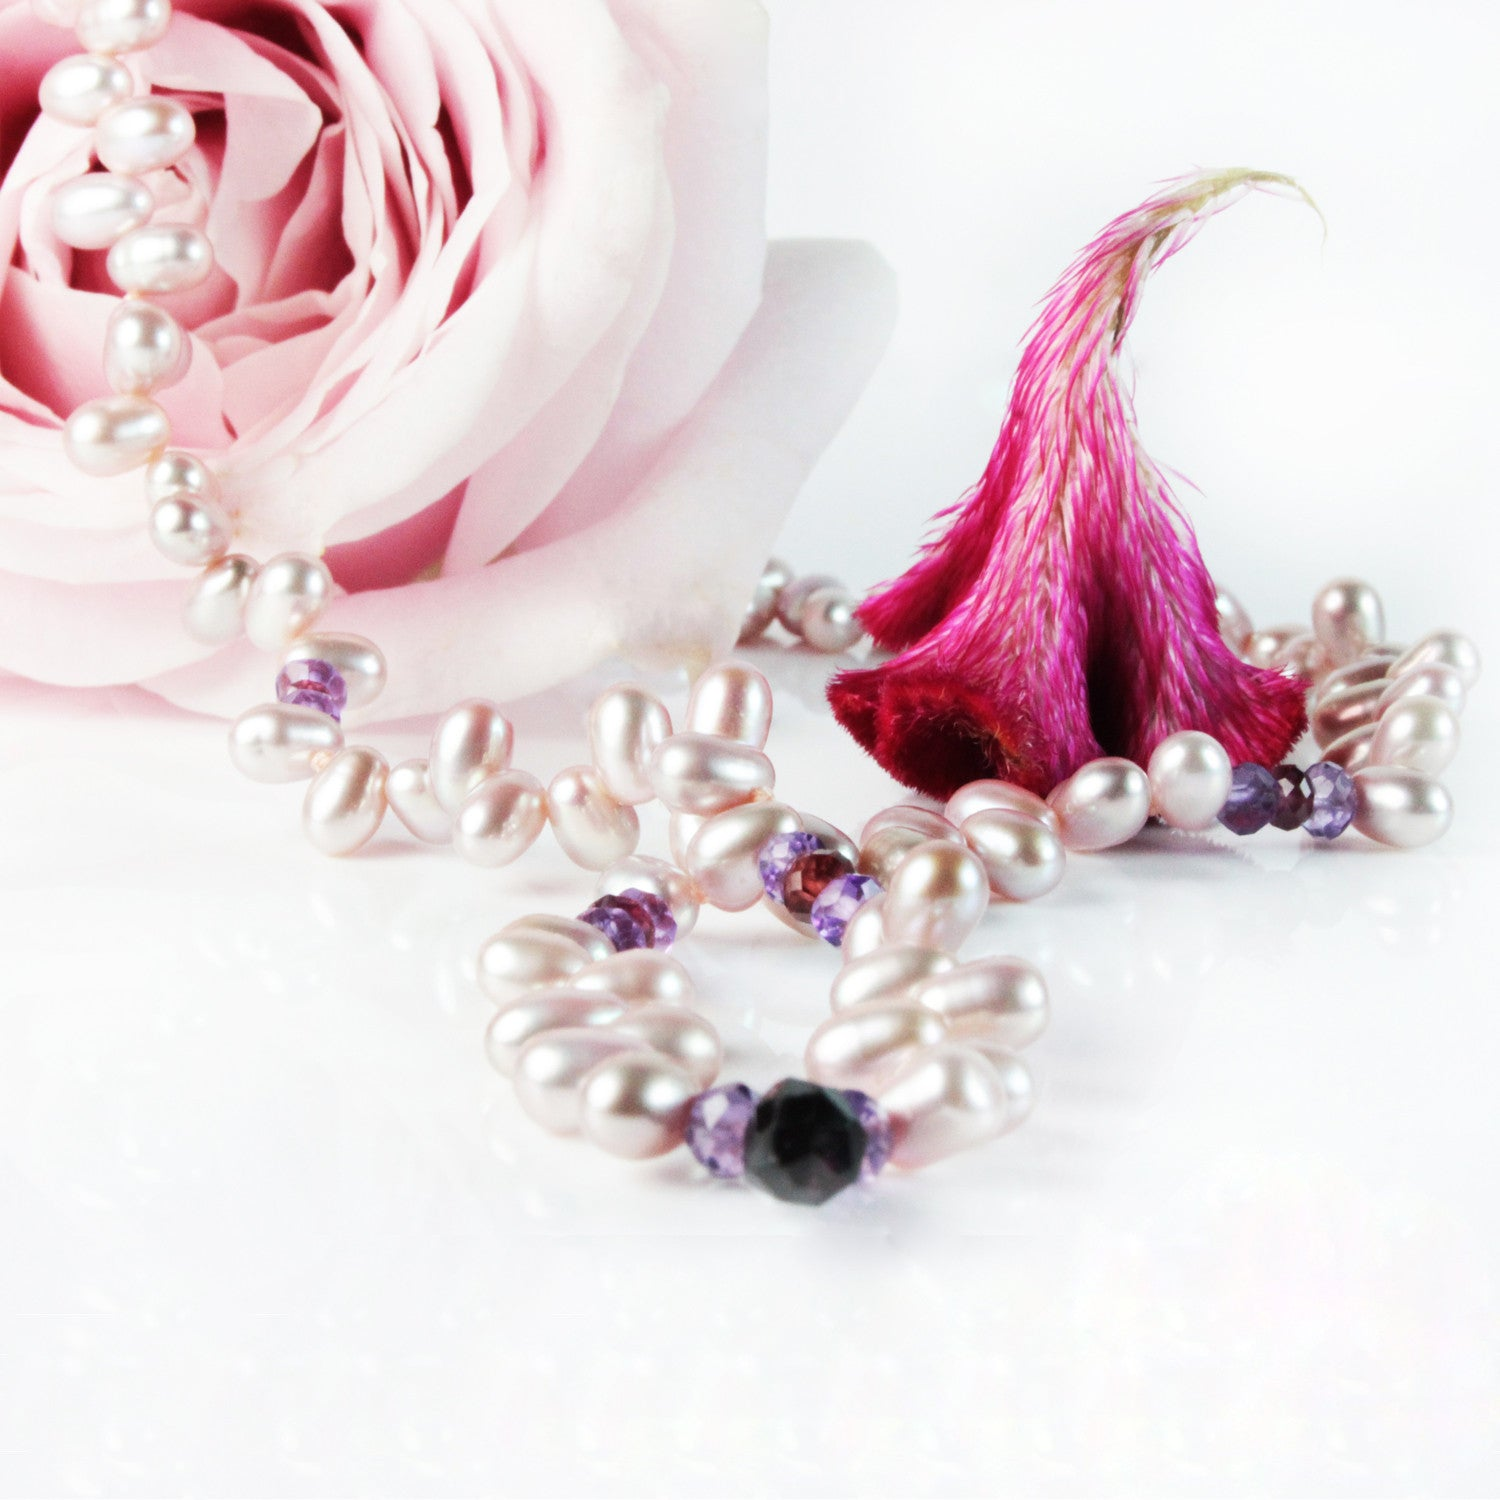 Freshwater Pearl Droplet Necklace with Semi Precious Stones in Pink